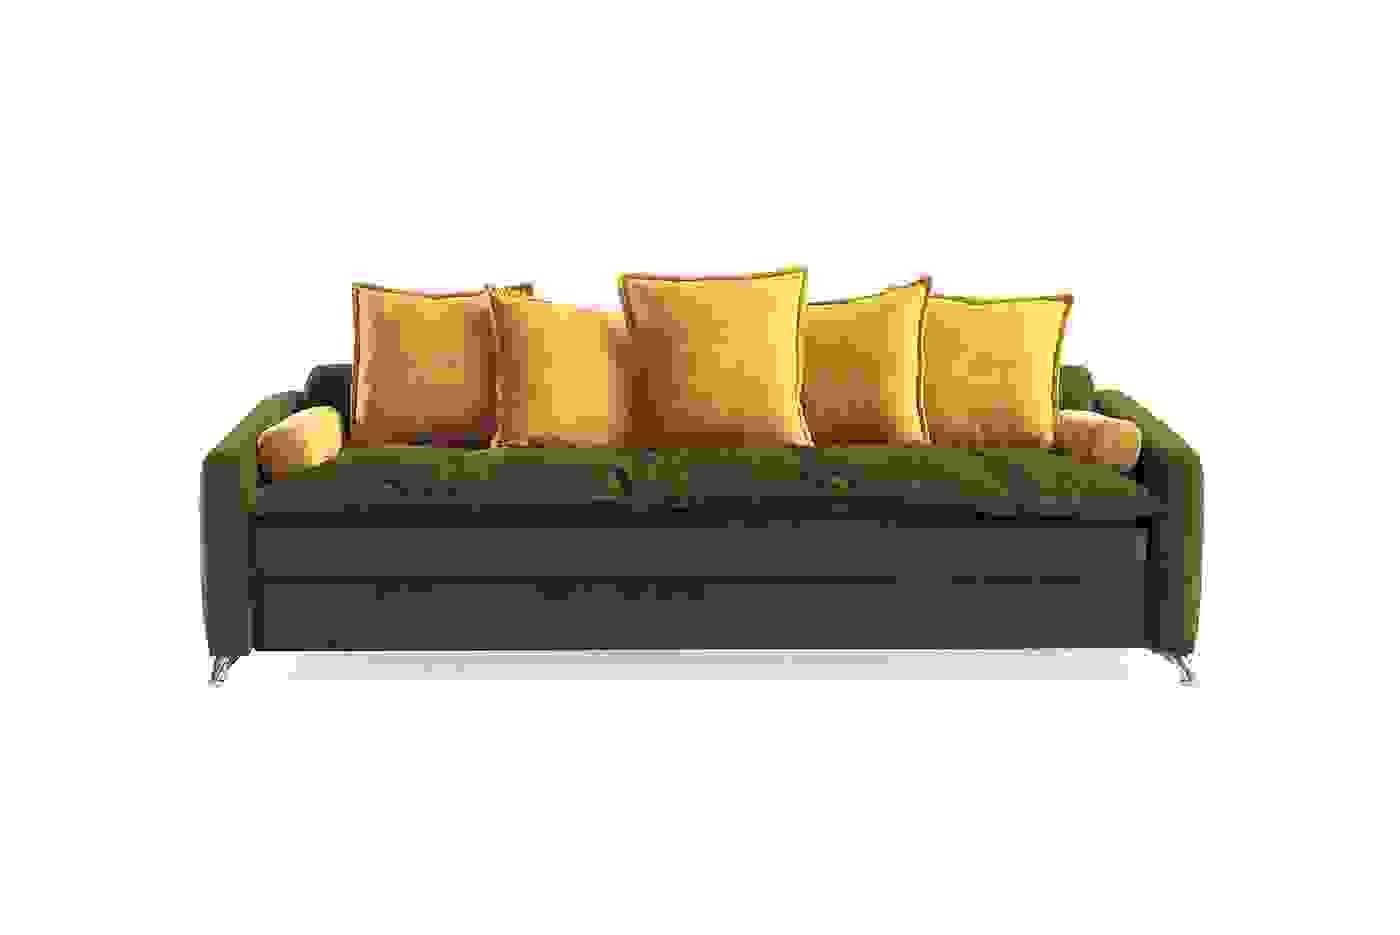 frances-banon-transversal-sofa-bed-3.jpg